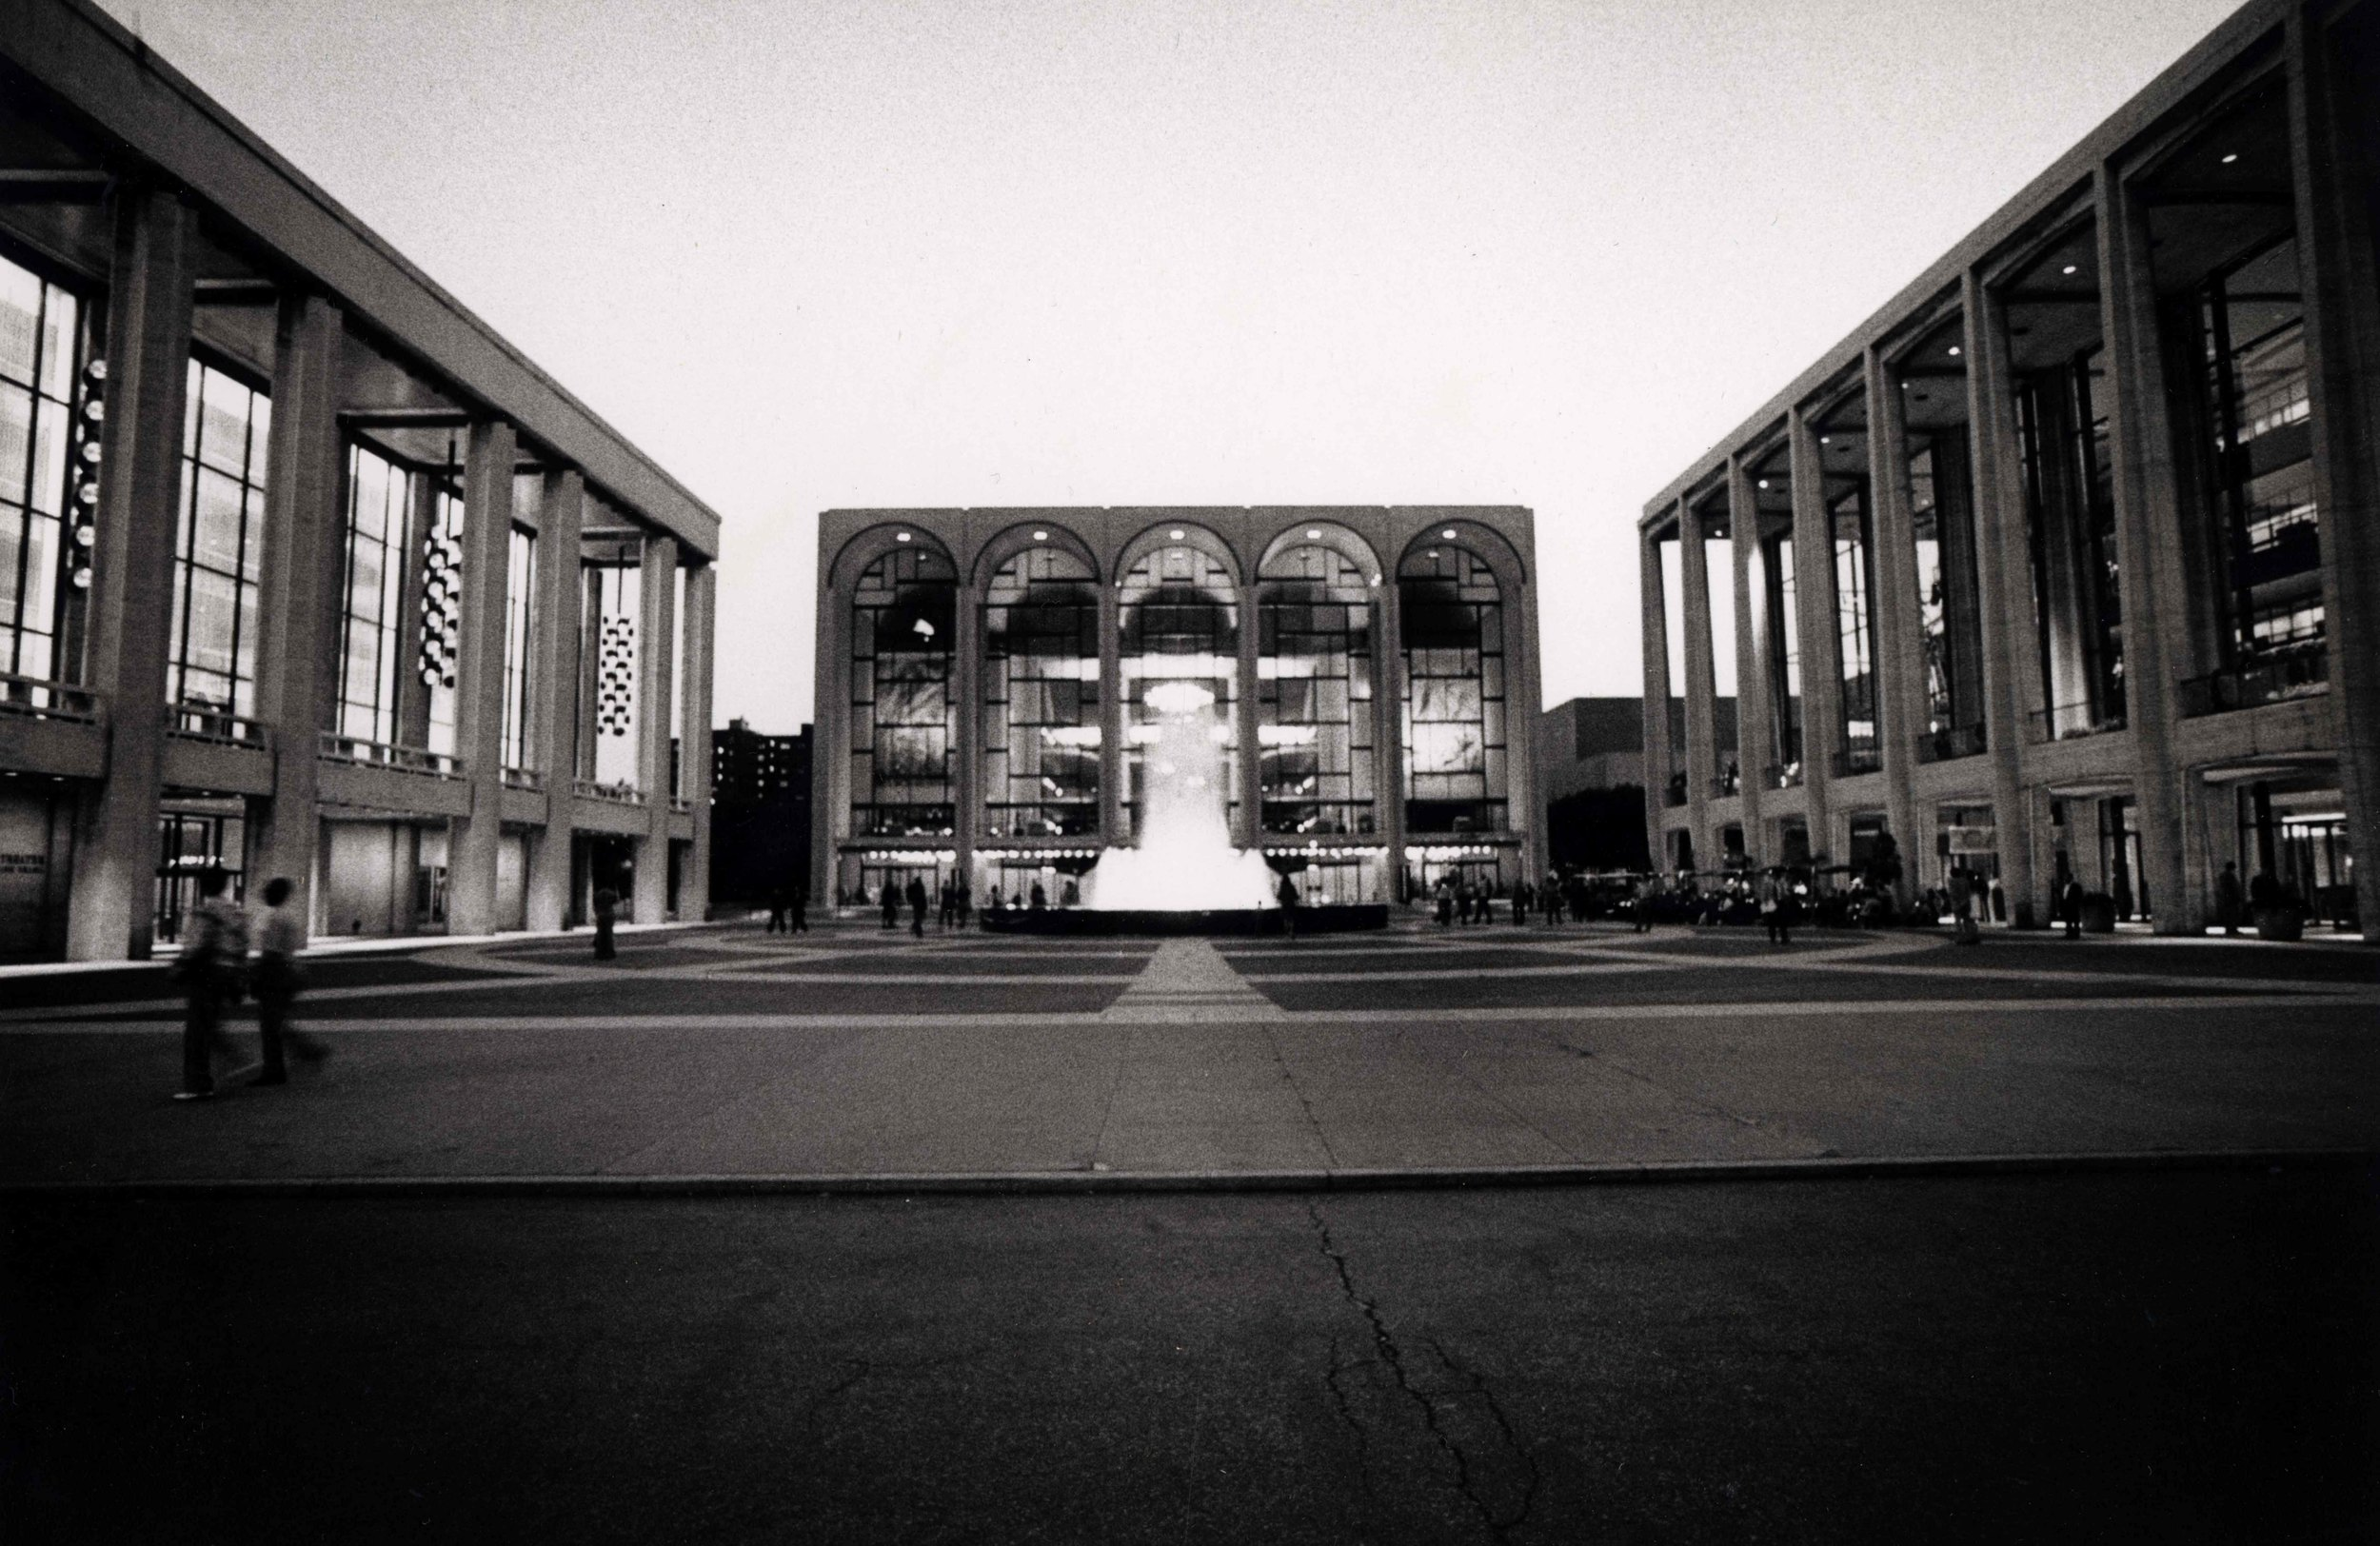 15_86_View of three building with fountain in the middle_Dan Wynn Archive.jpeg